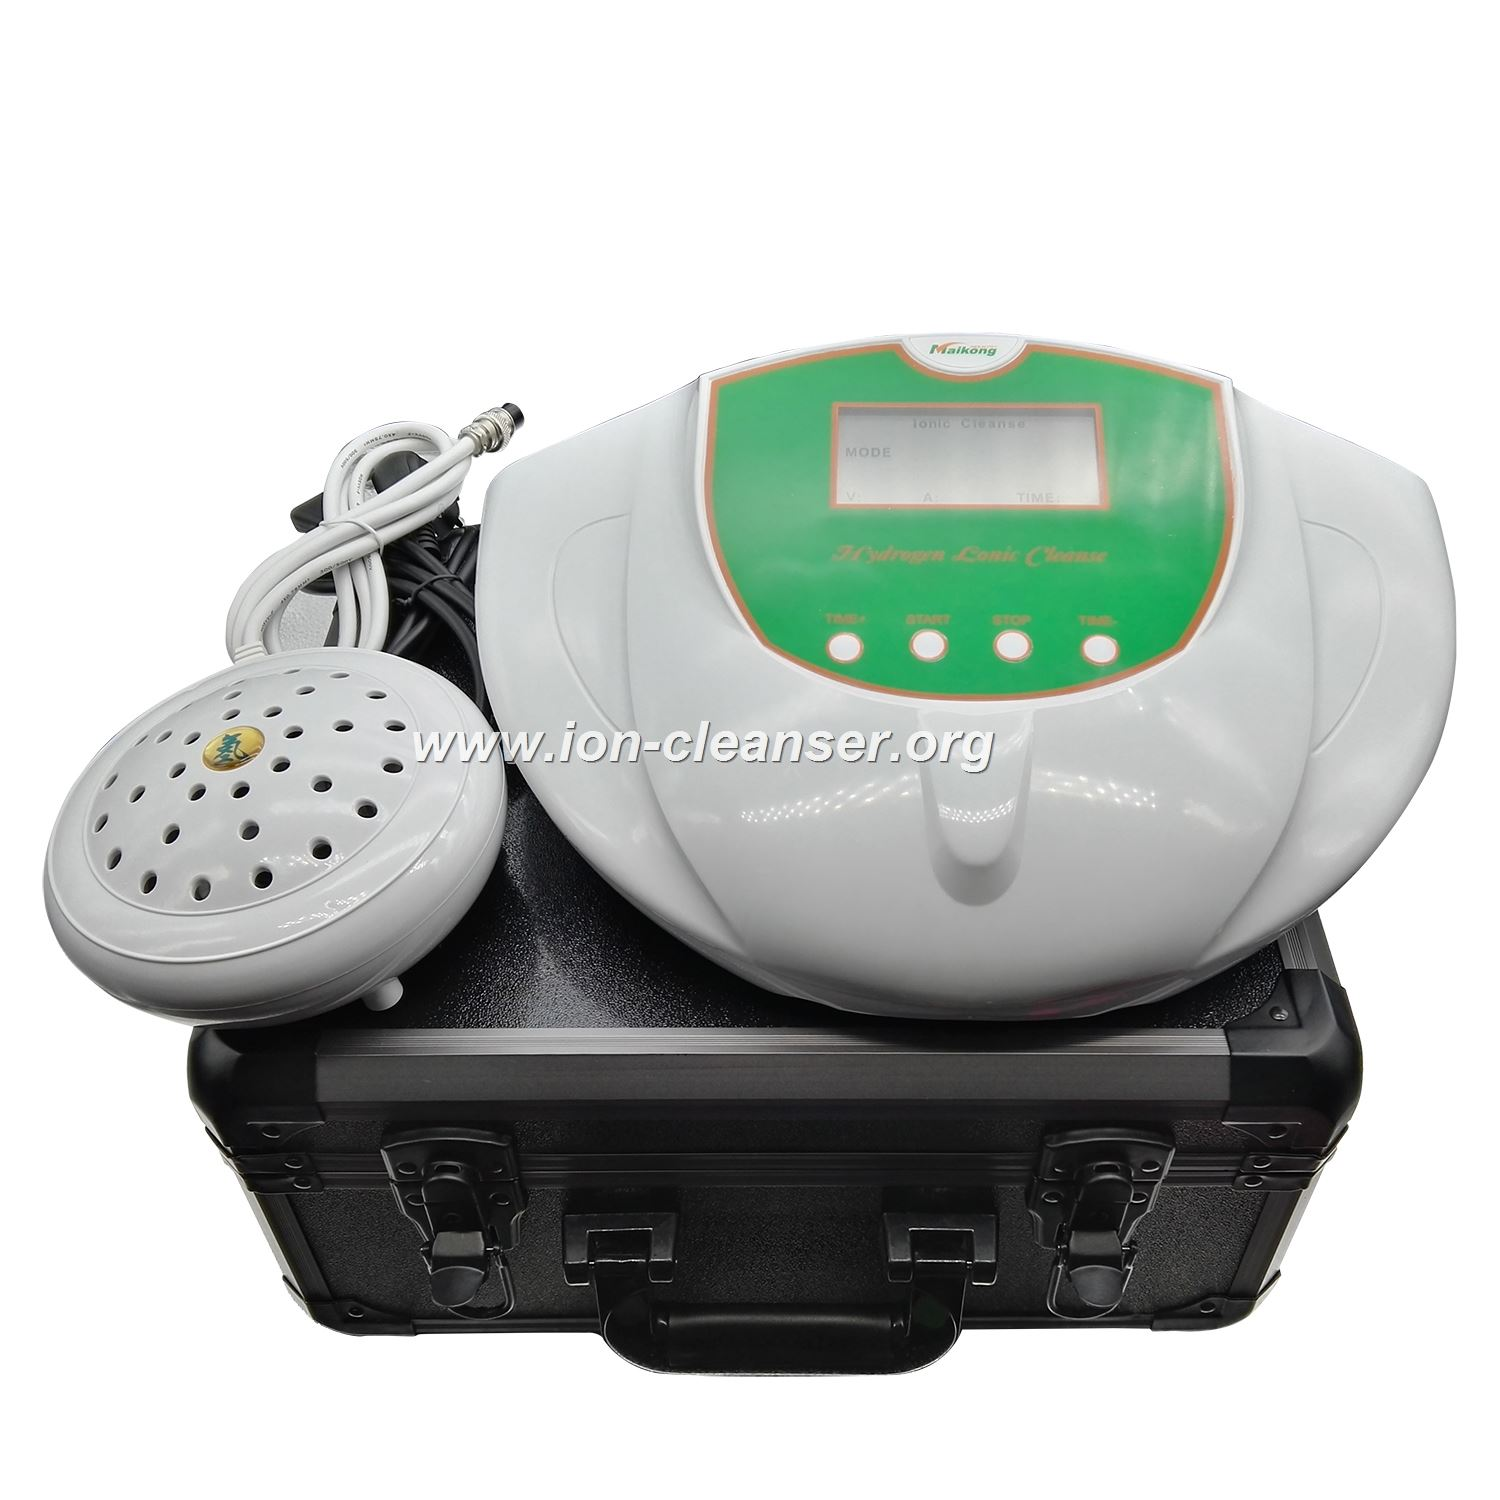 Foot detox machine price Here's a Quick Way to Get It